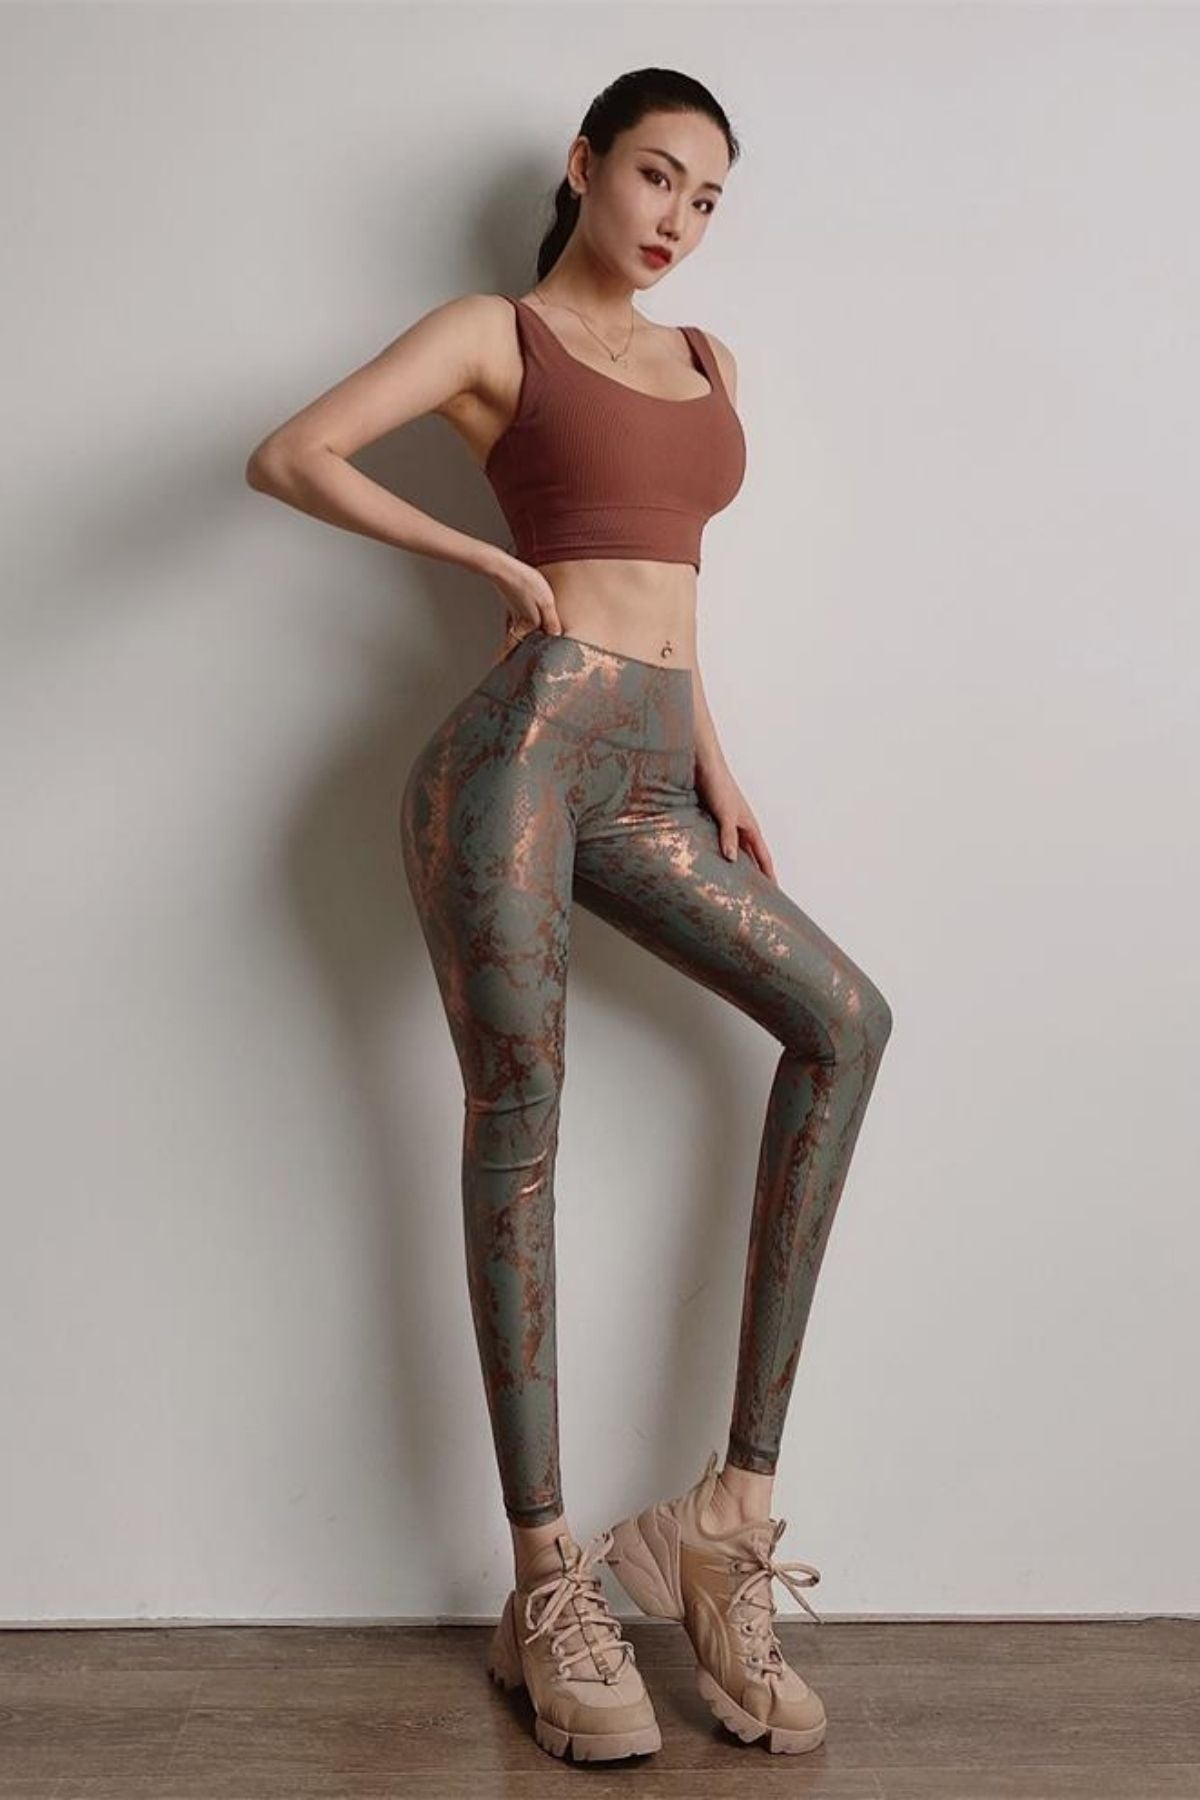 Women's Grey Snakeskin Print Legging With High Waisted Fit And Ruched Shiny Metallic Color